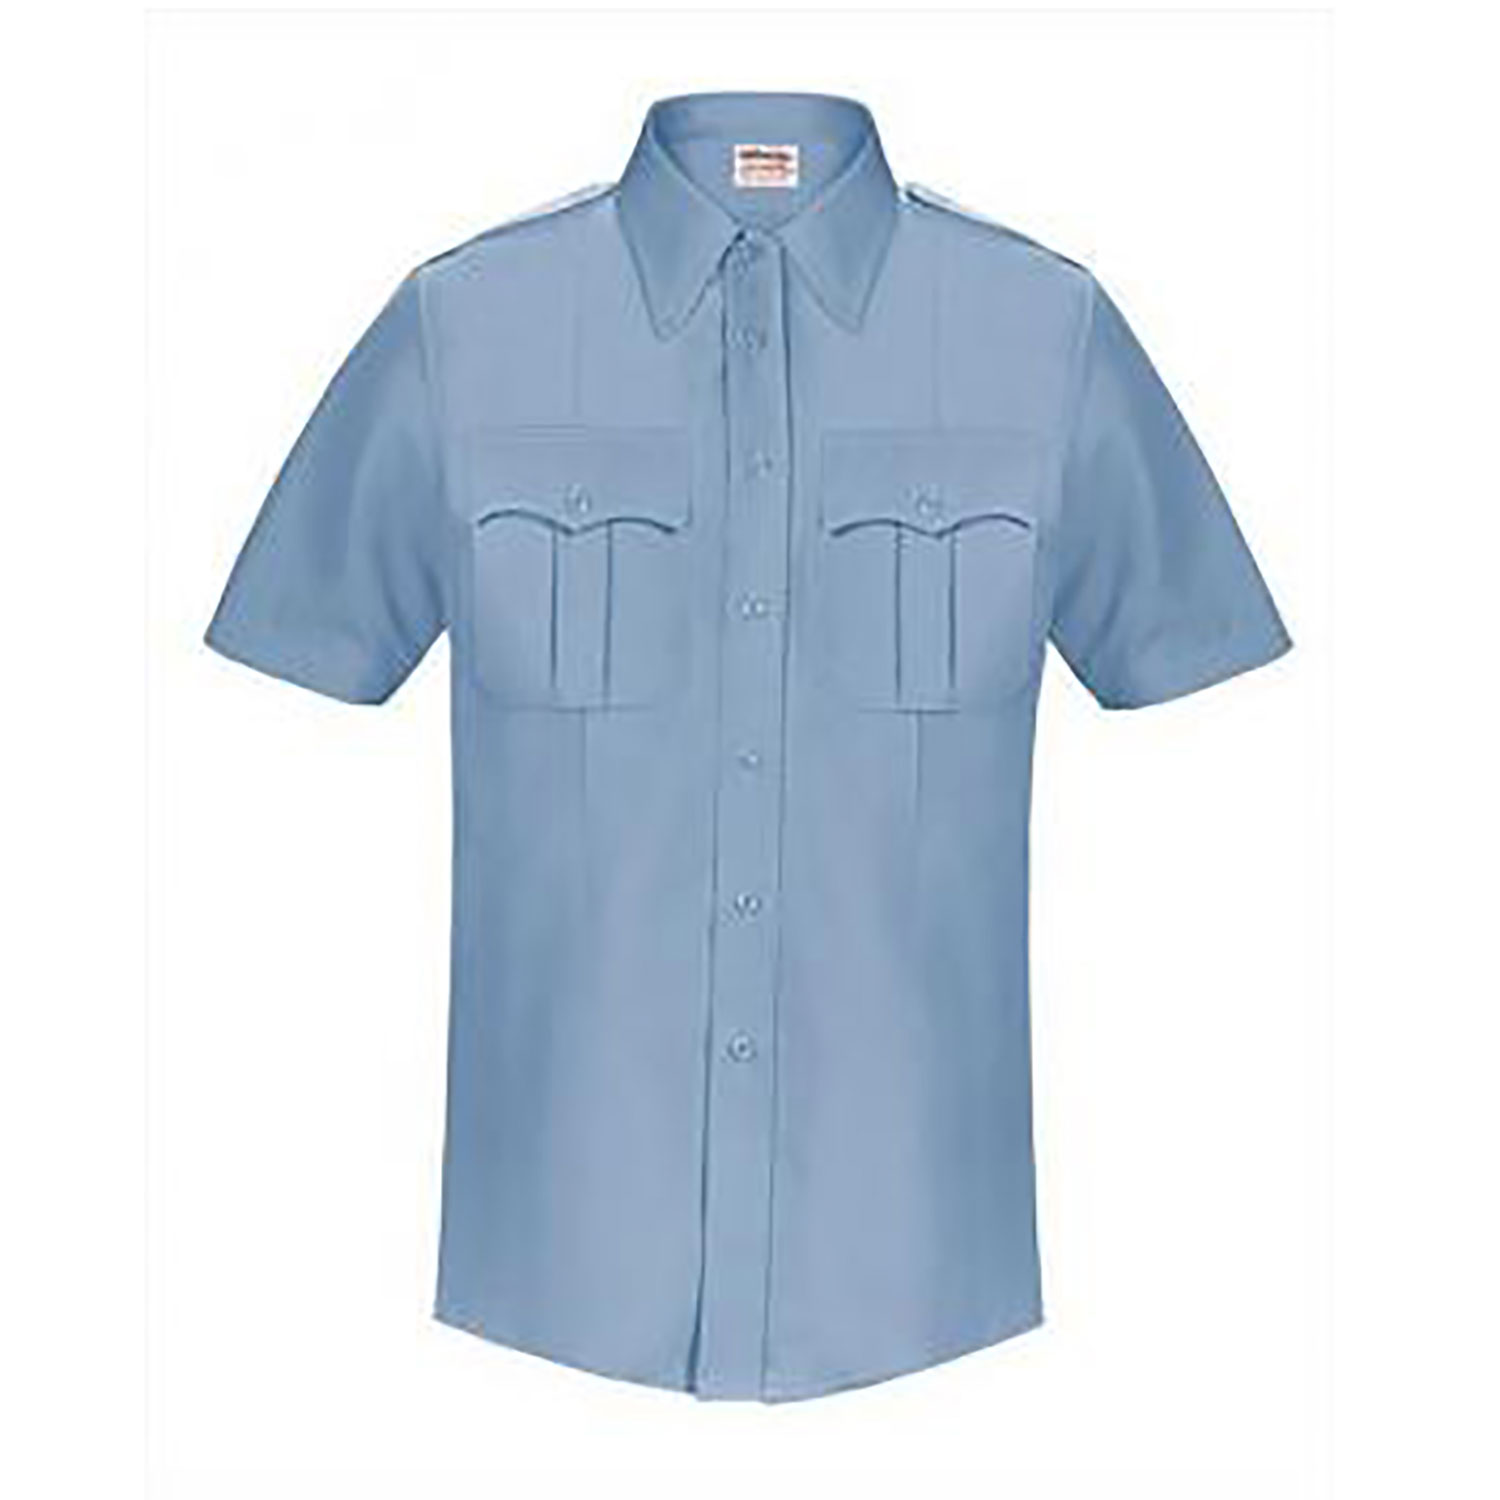 Elbeco DutyMax Short Sleeve Shirt